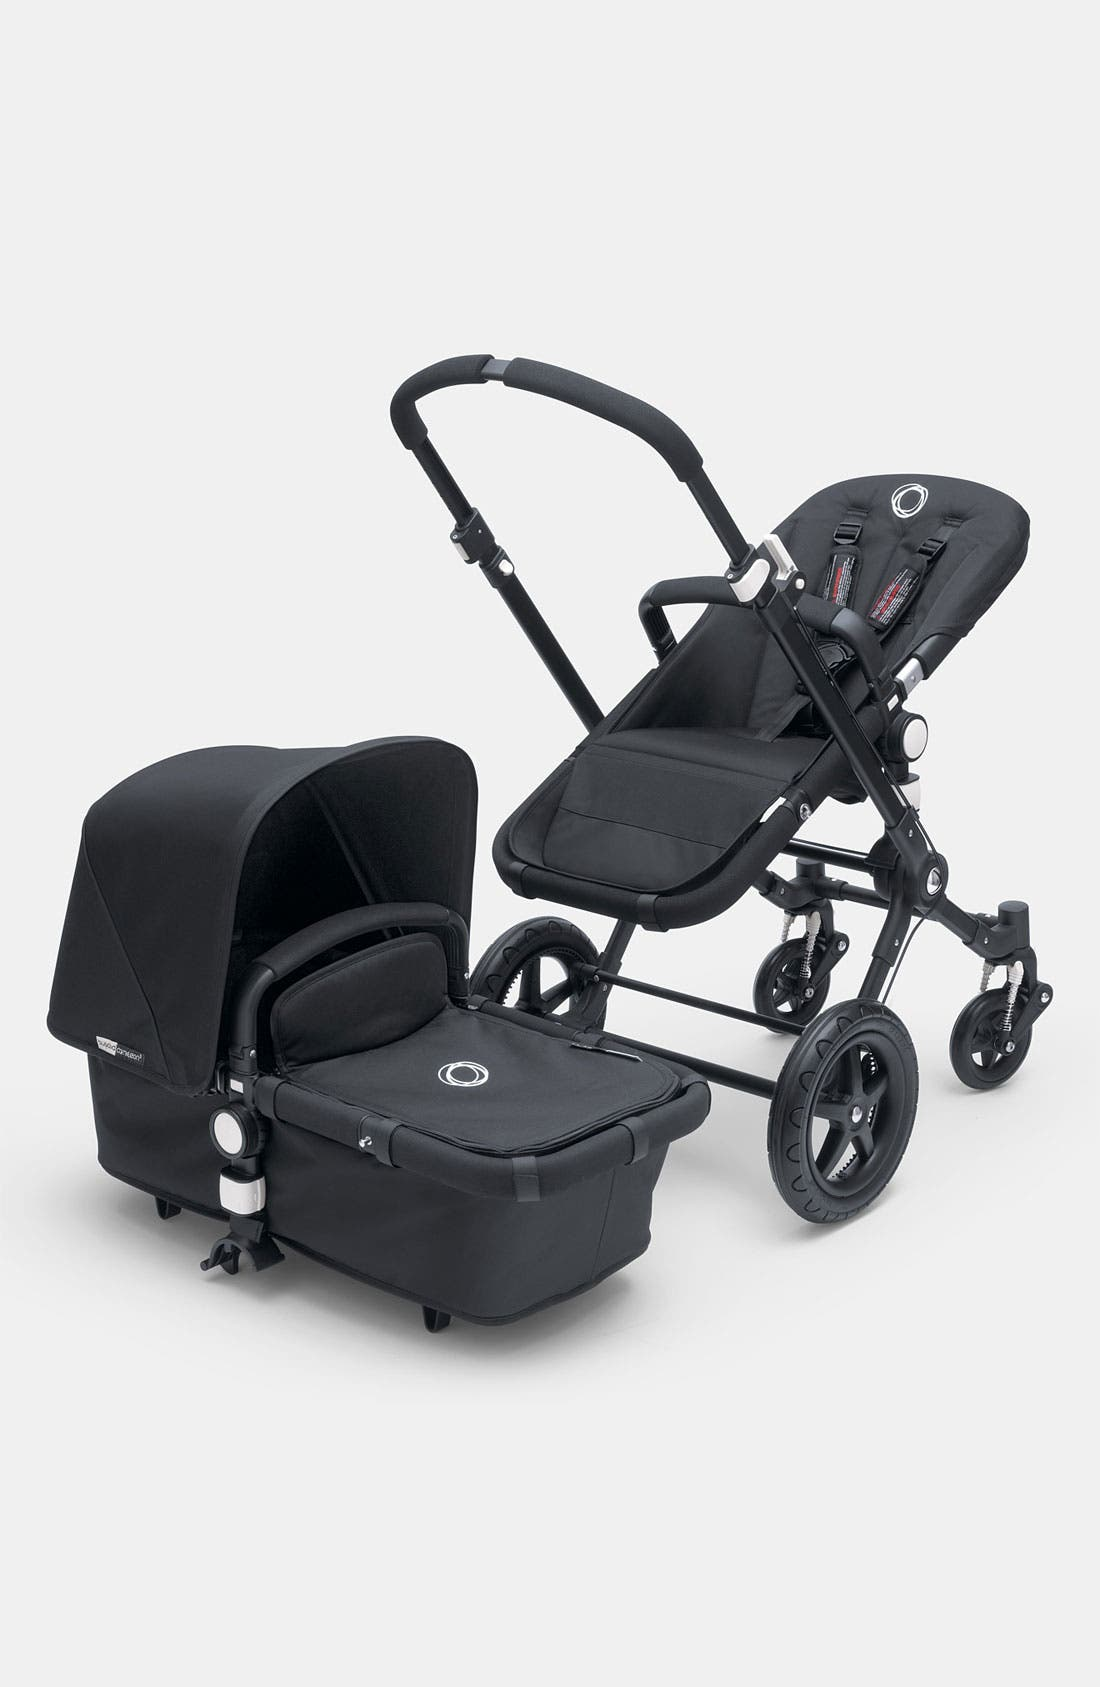 Main Image - Bugaboo 'Cameleon³' Stroller - All Black Frame with Fabric Set (Special Edition)